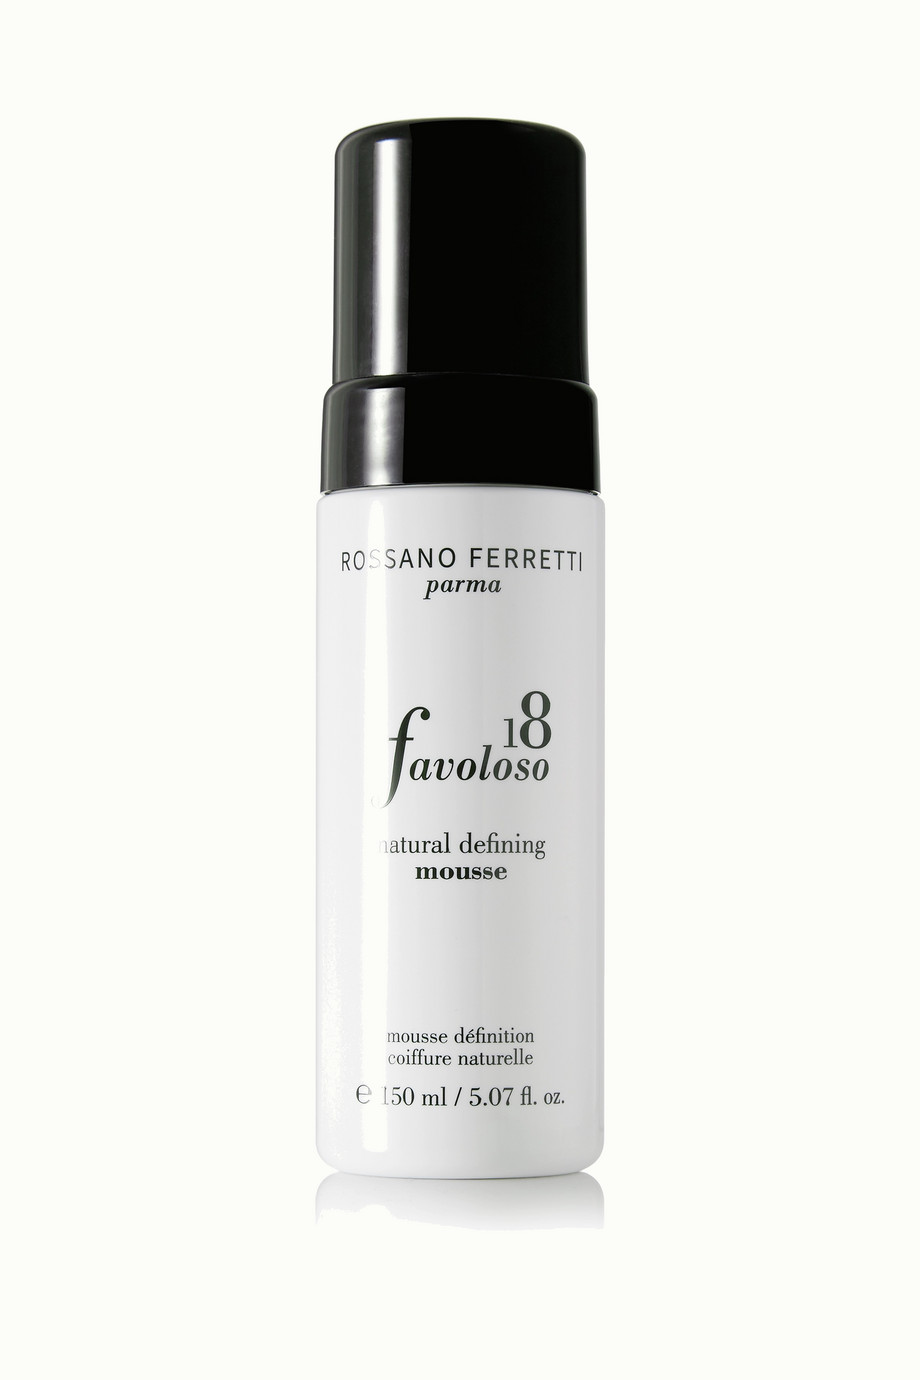 ROSSANO FERRETTI PARMA Favoloso Natural Defining Mousse, 150ml